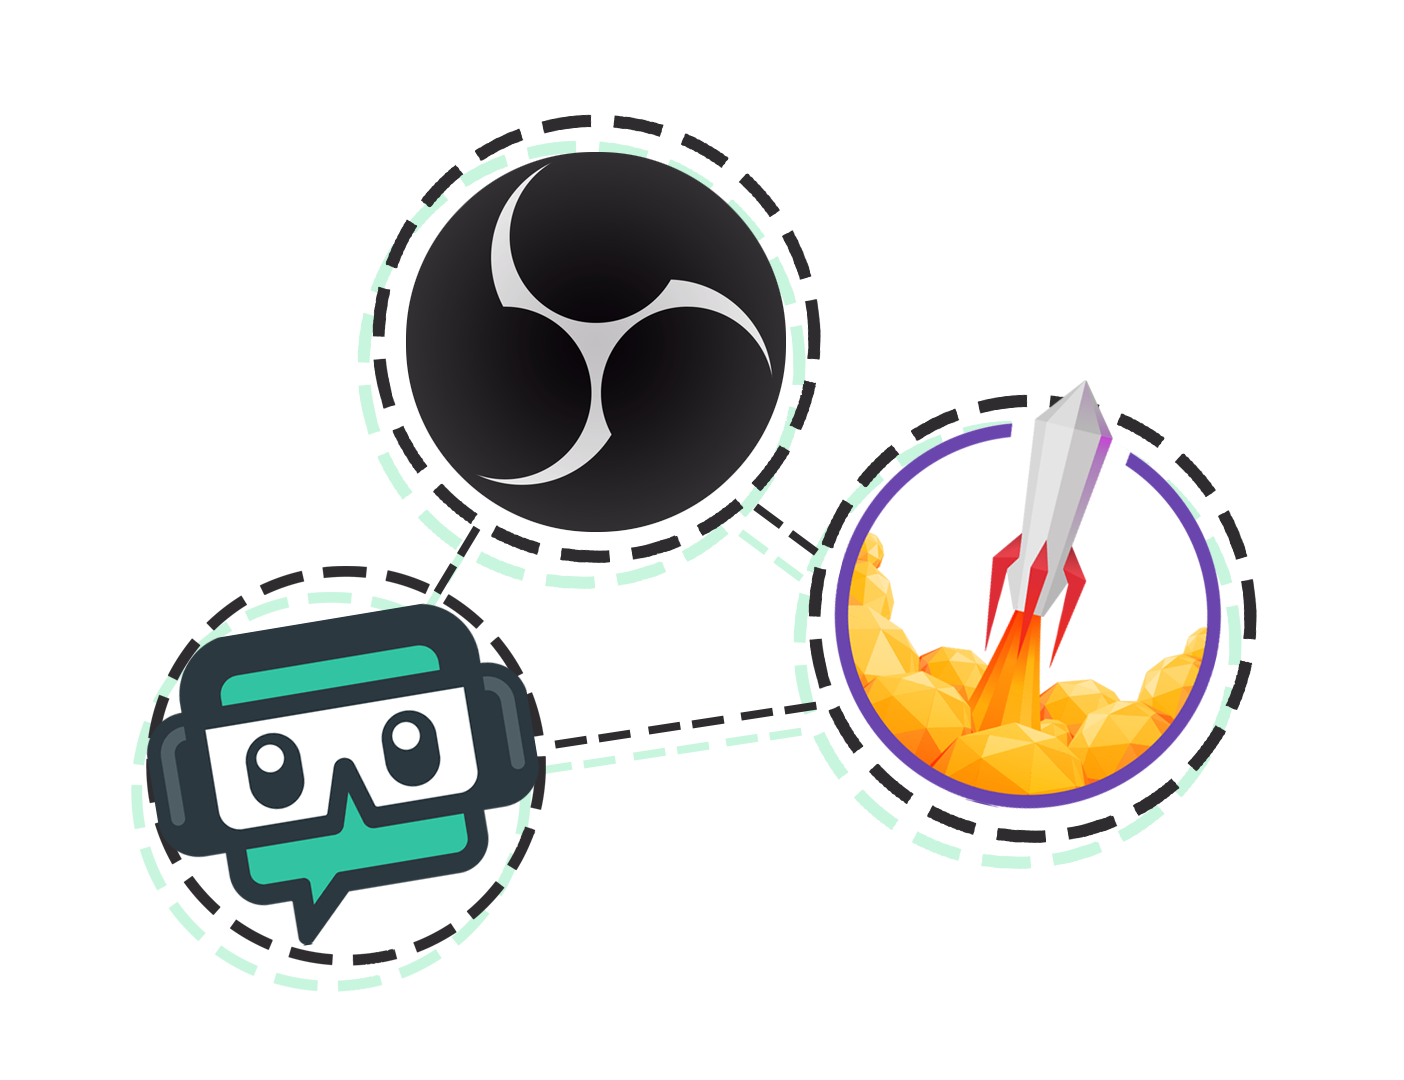 3 Logos of Streamlabs OBS StreamElements